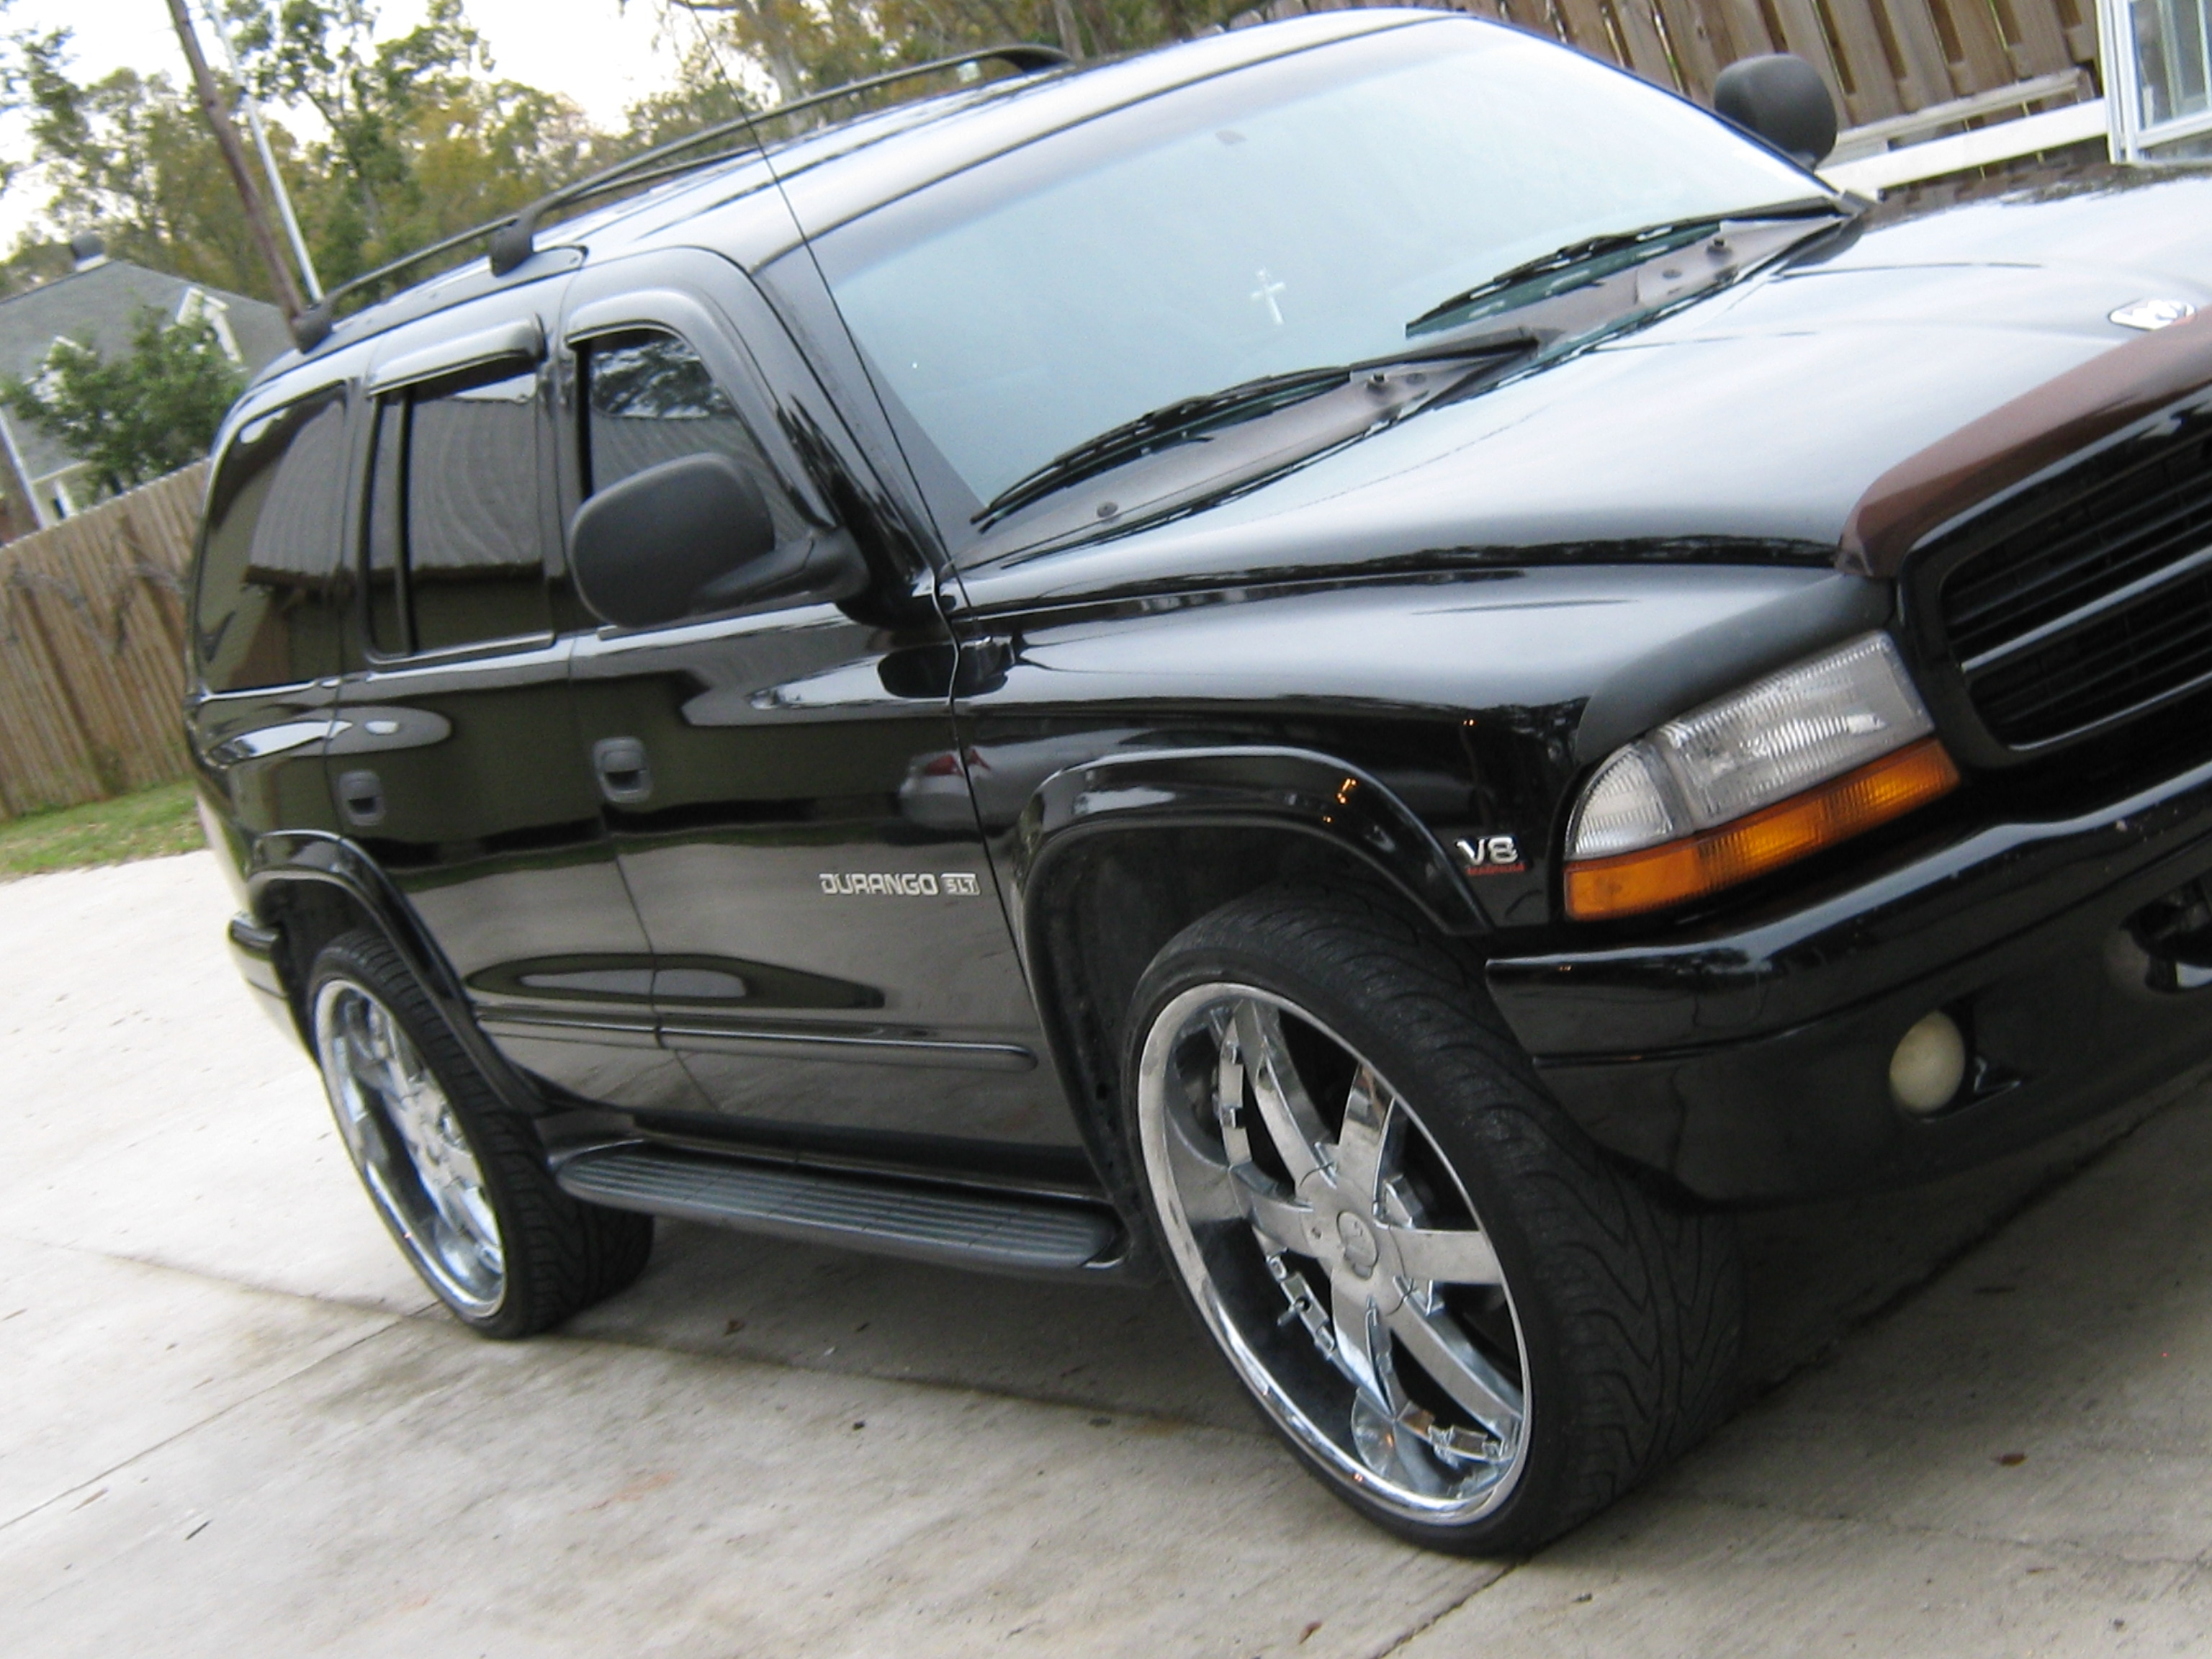 Coreygunz225 2000 Dodge Durango Specs Photos